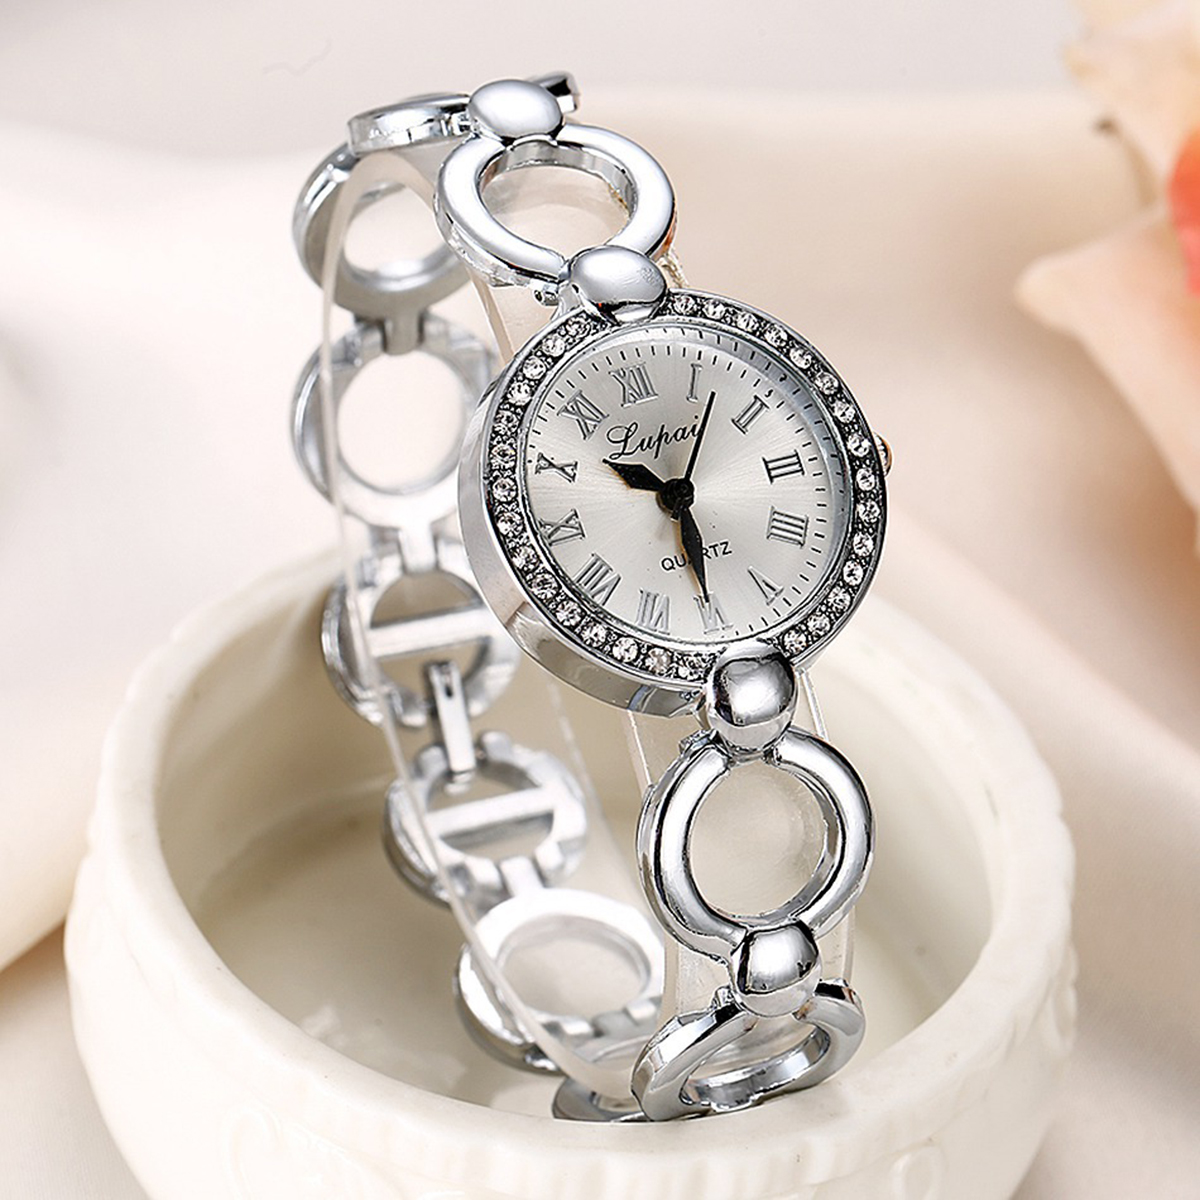 Fashion Women Lady Bling Stainless Steel Crystal Watch Elegant Luxury Analog Quartz Bracelet Wrist Watches Relogio Feminino mymei women luxury bracelet watch stainless steel analog quartz wrist watches